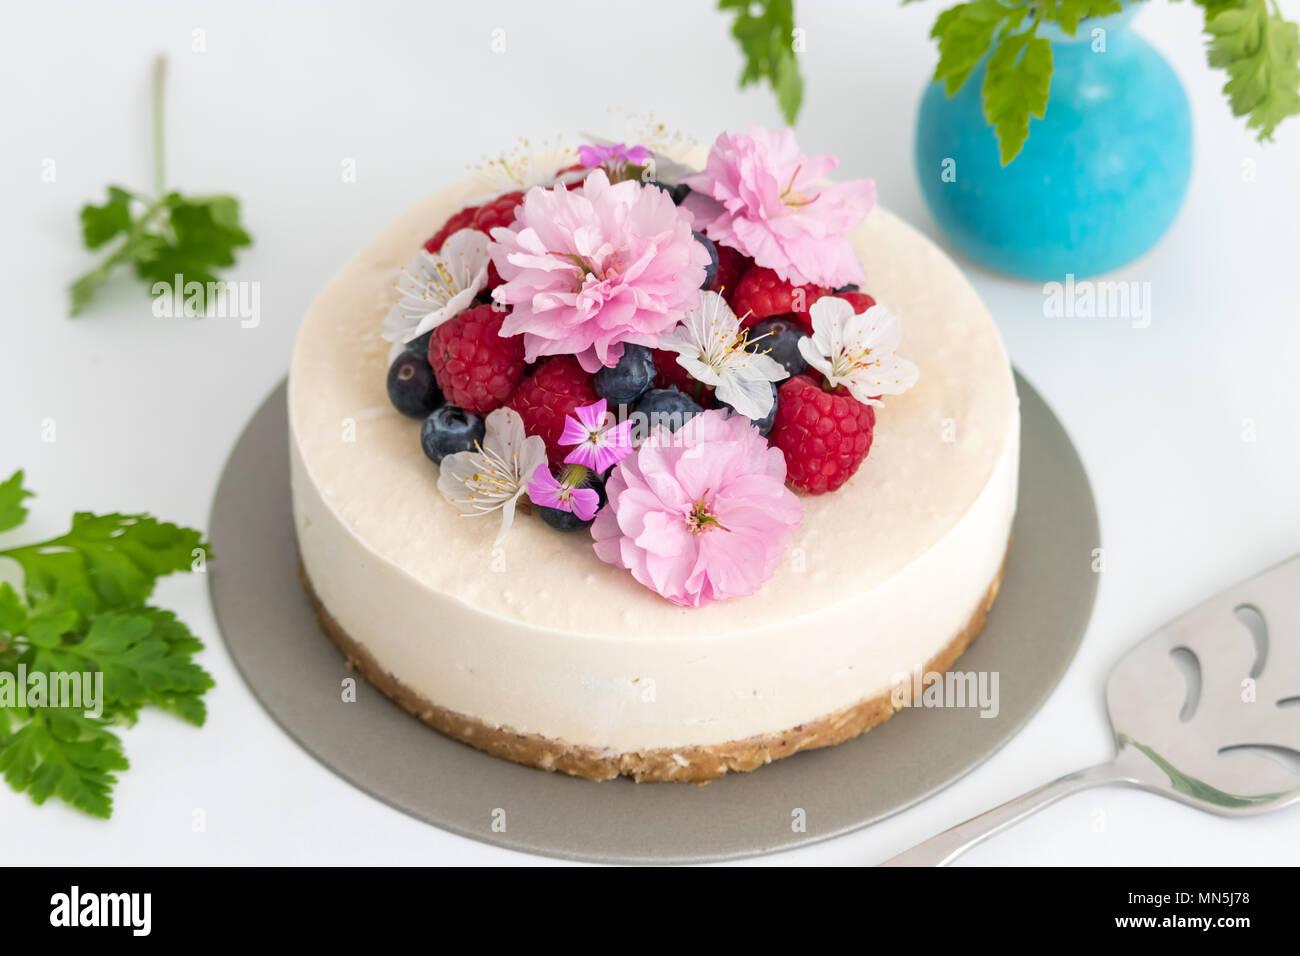 This Homemade Raw Cake Is Decorated With Raspberries Blueberries And Fresh Flowers Makes A Delicious Dessert